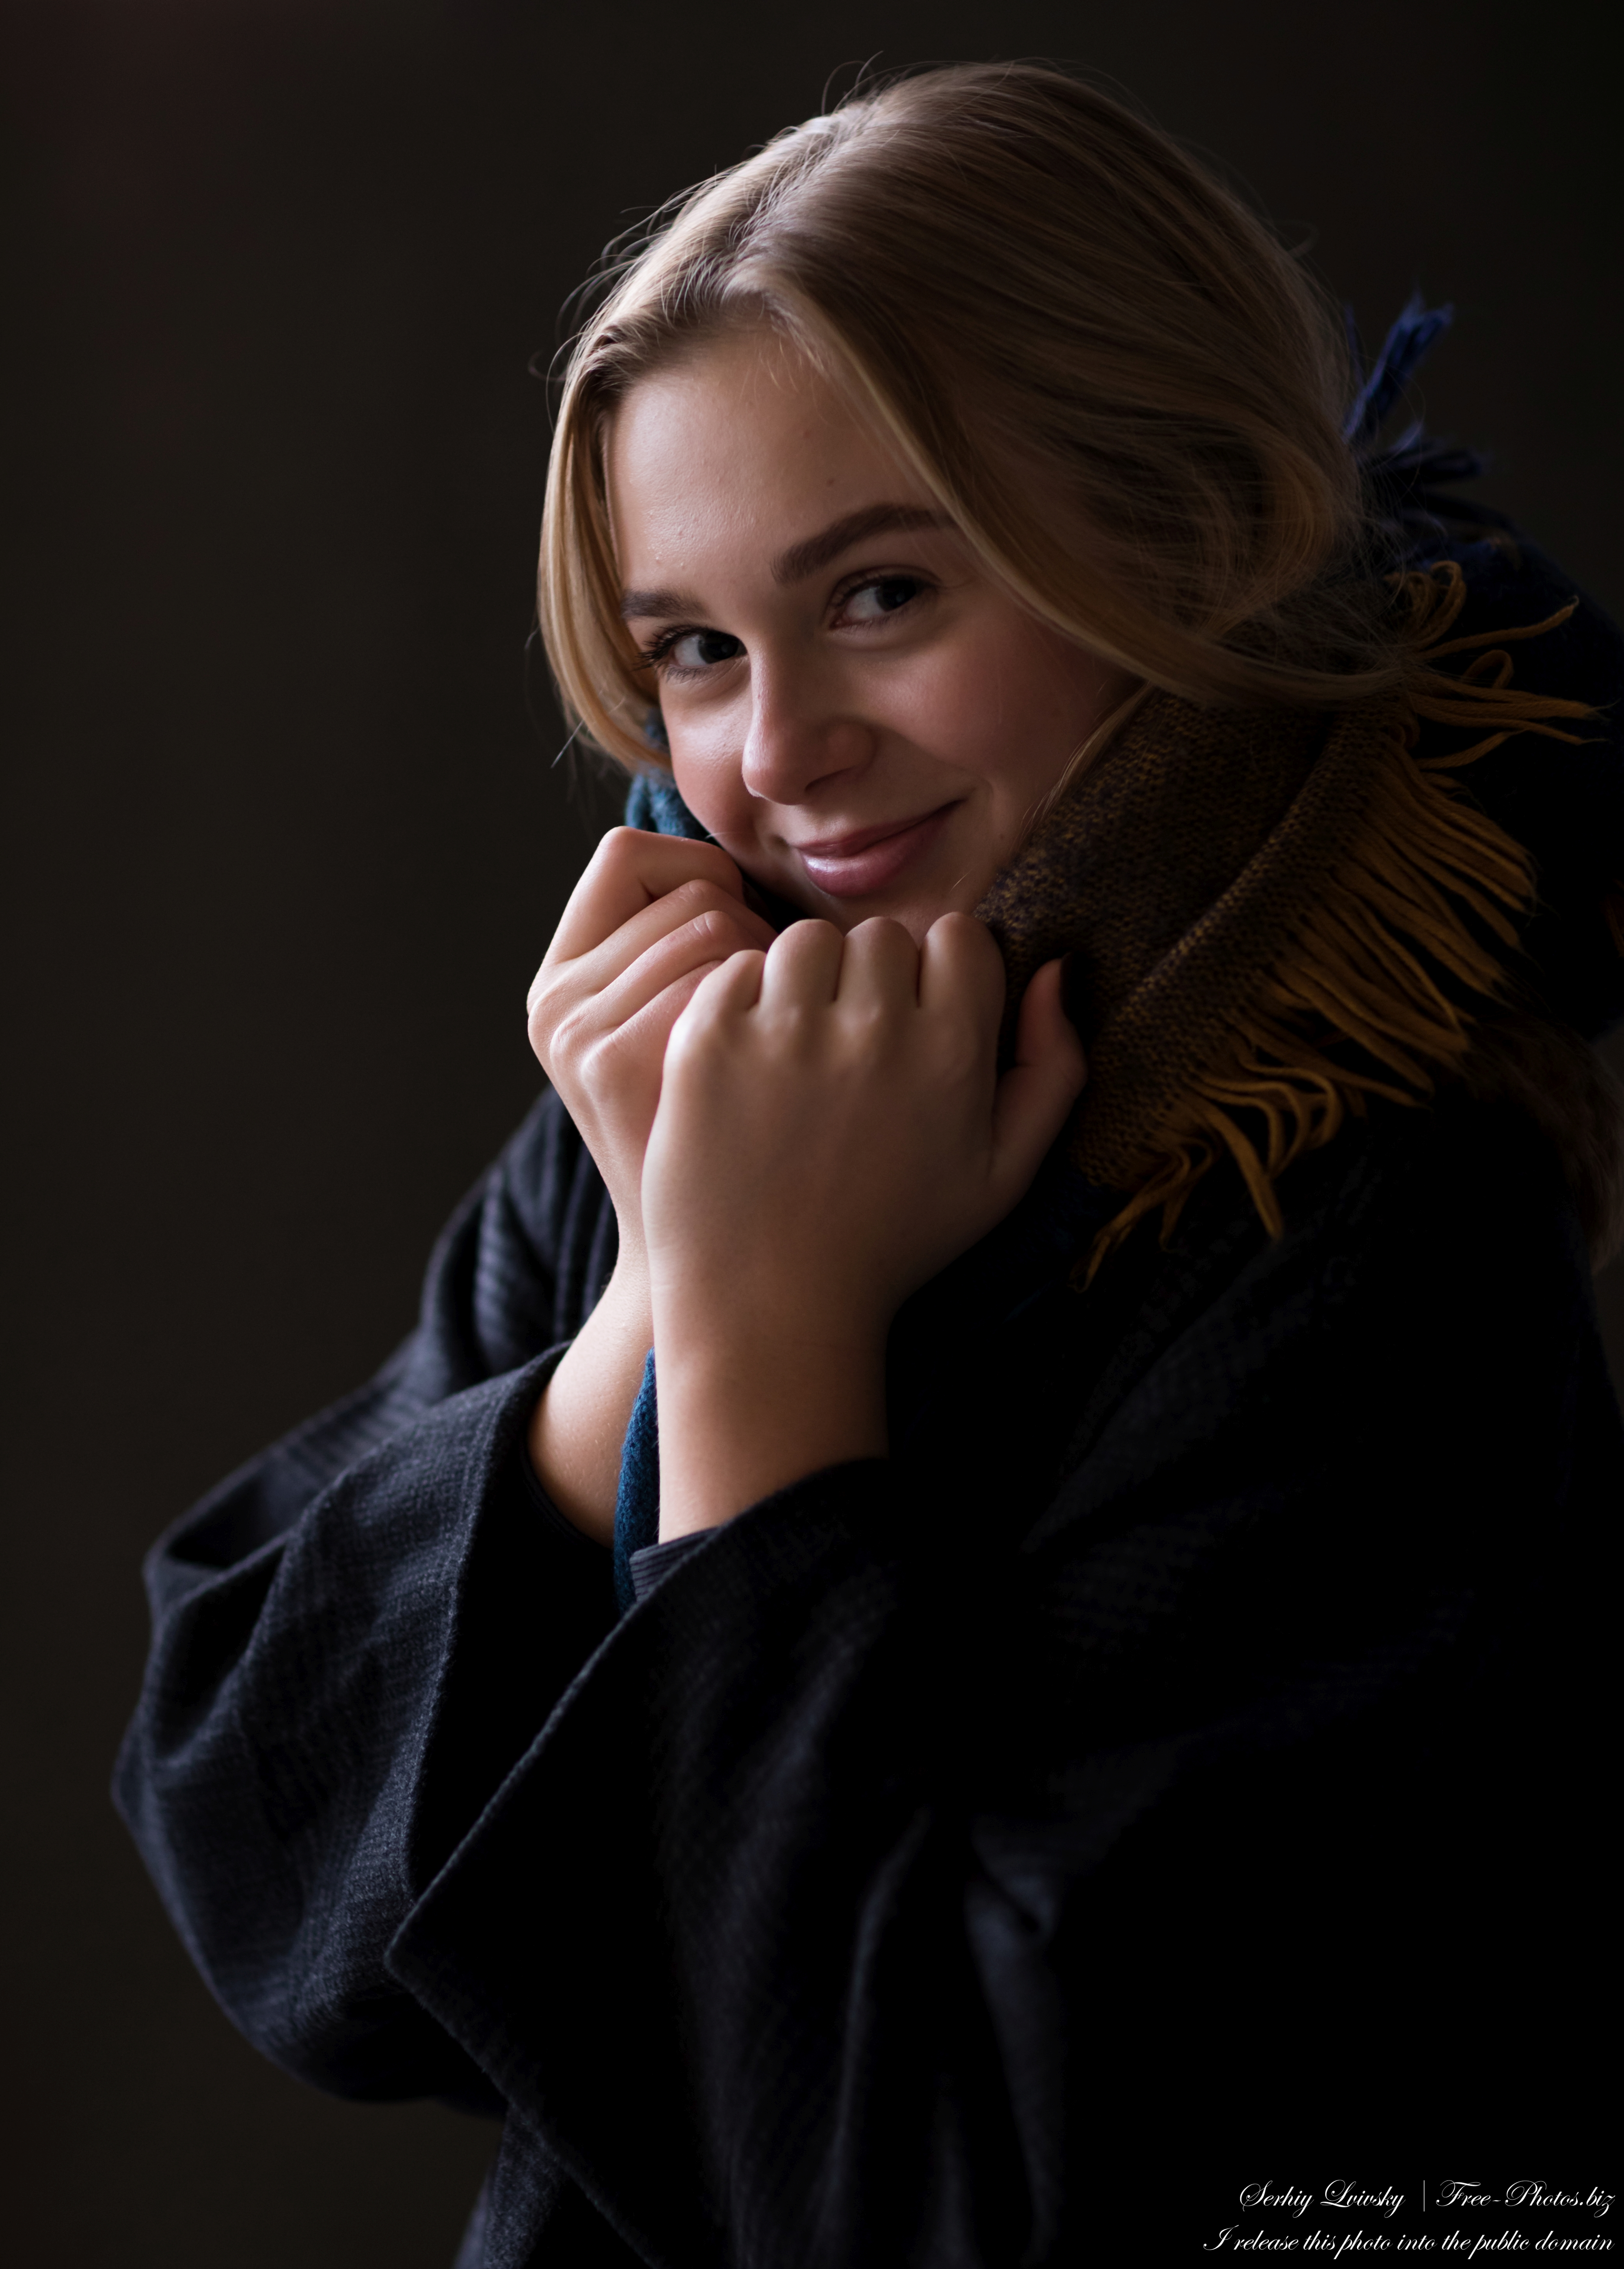 emilia_a_15-year-old_natural_blonde_catholic_girl_in_nov_2020_by_serhiy_lvivsky_21